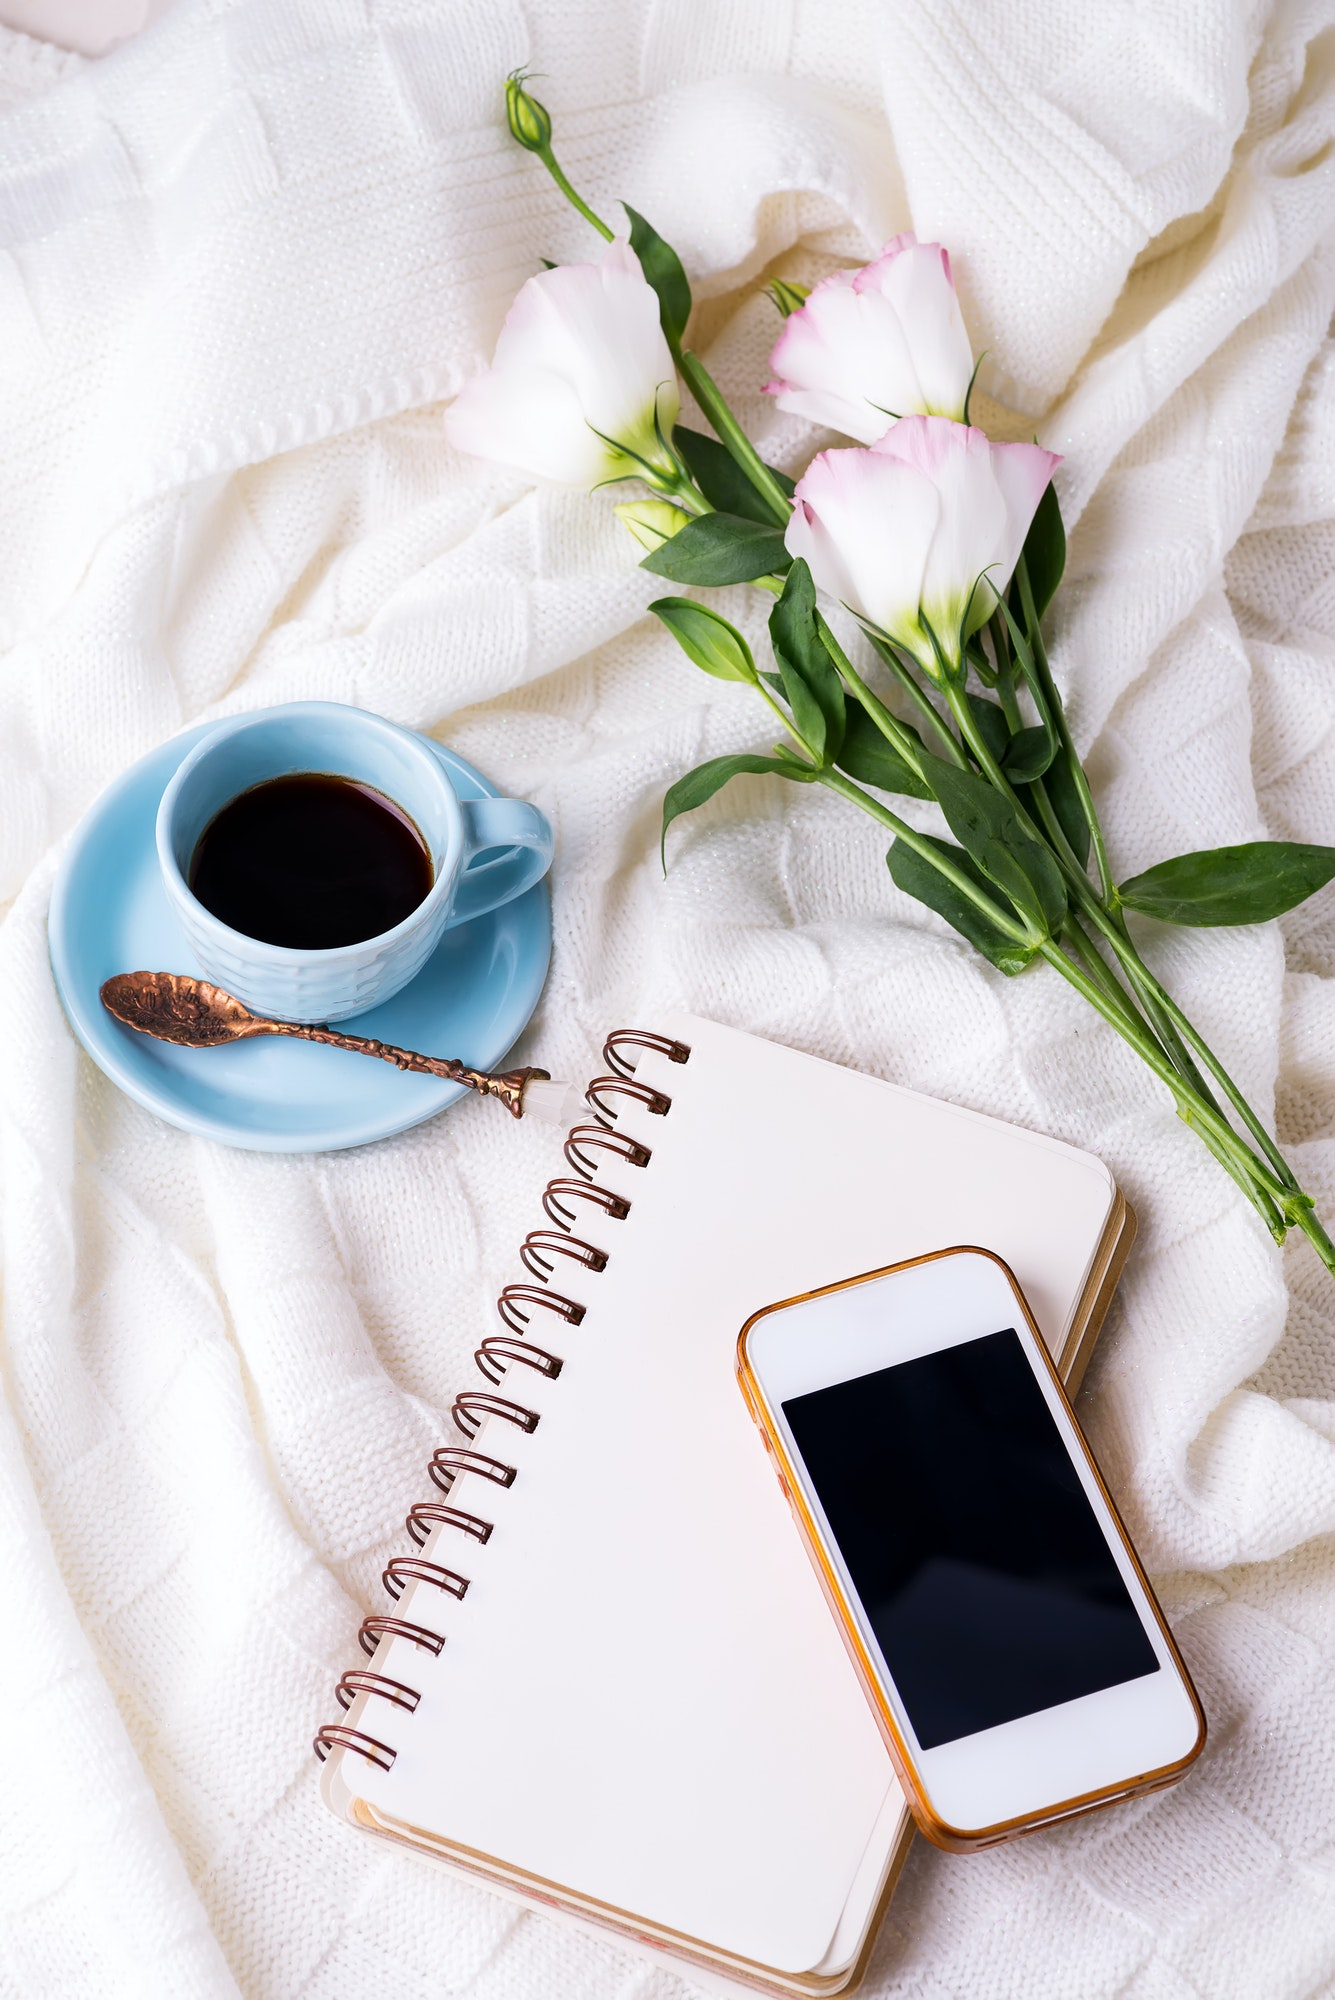 Having a cup of coffee with chocolate, flowers eustoma, notebook and phone on blanket in bed